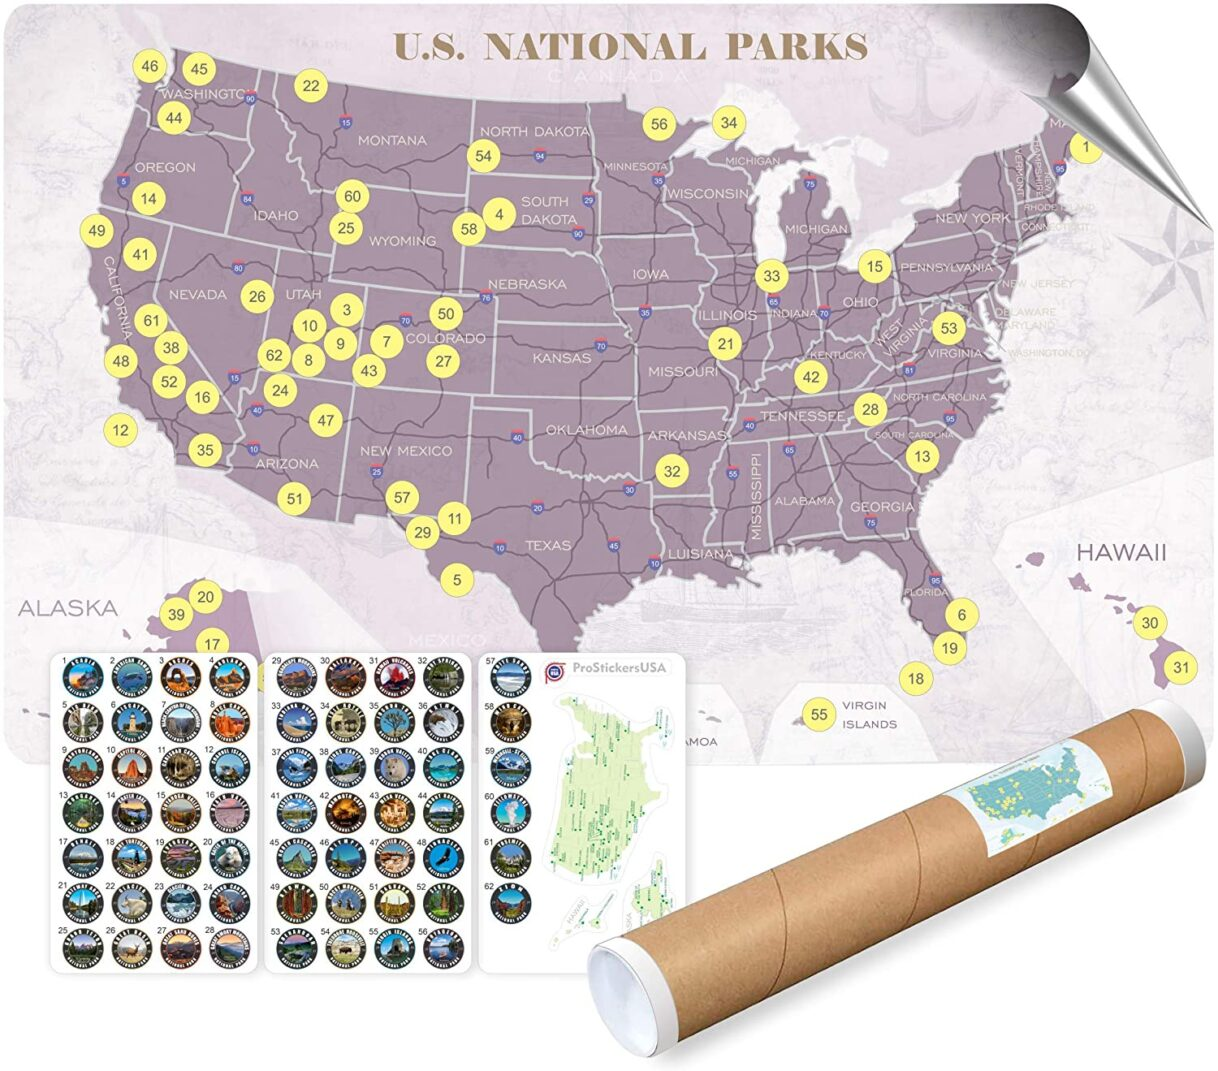 Collection of 63 Stickers Set – All US National Parks and Large Size Map of U.S. National Parks – 17 x 27 inch with Gift Tube Box